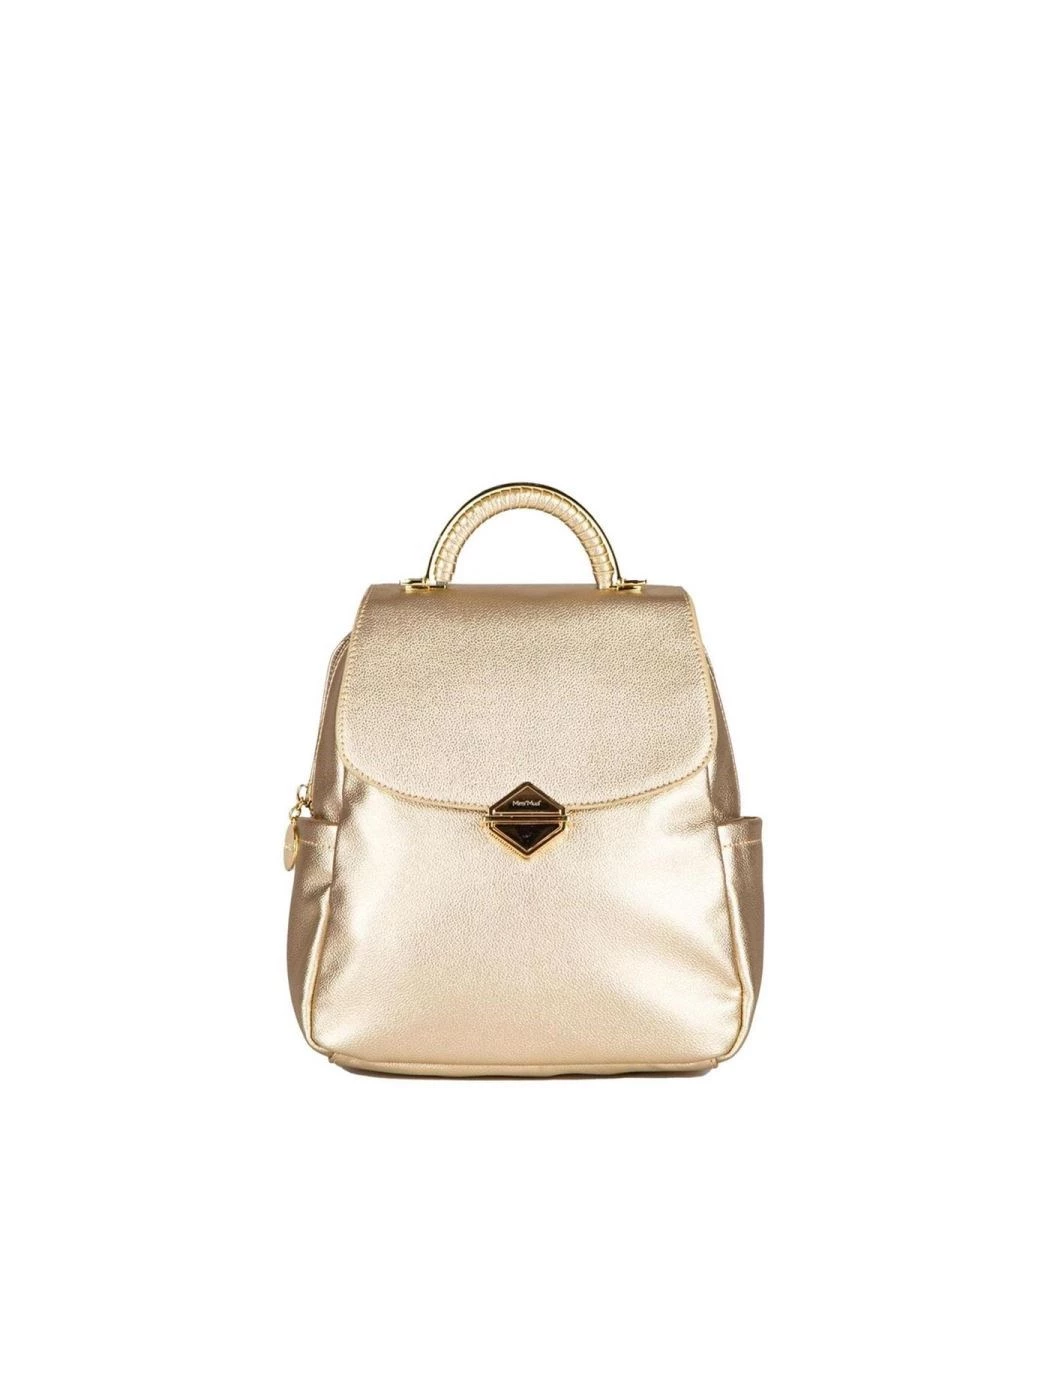 BACKPACK WITH METAL CLOSURE